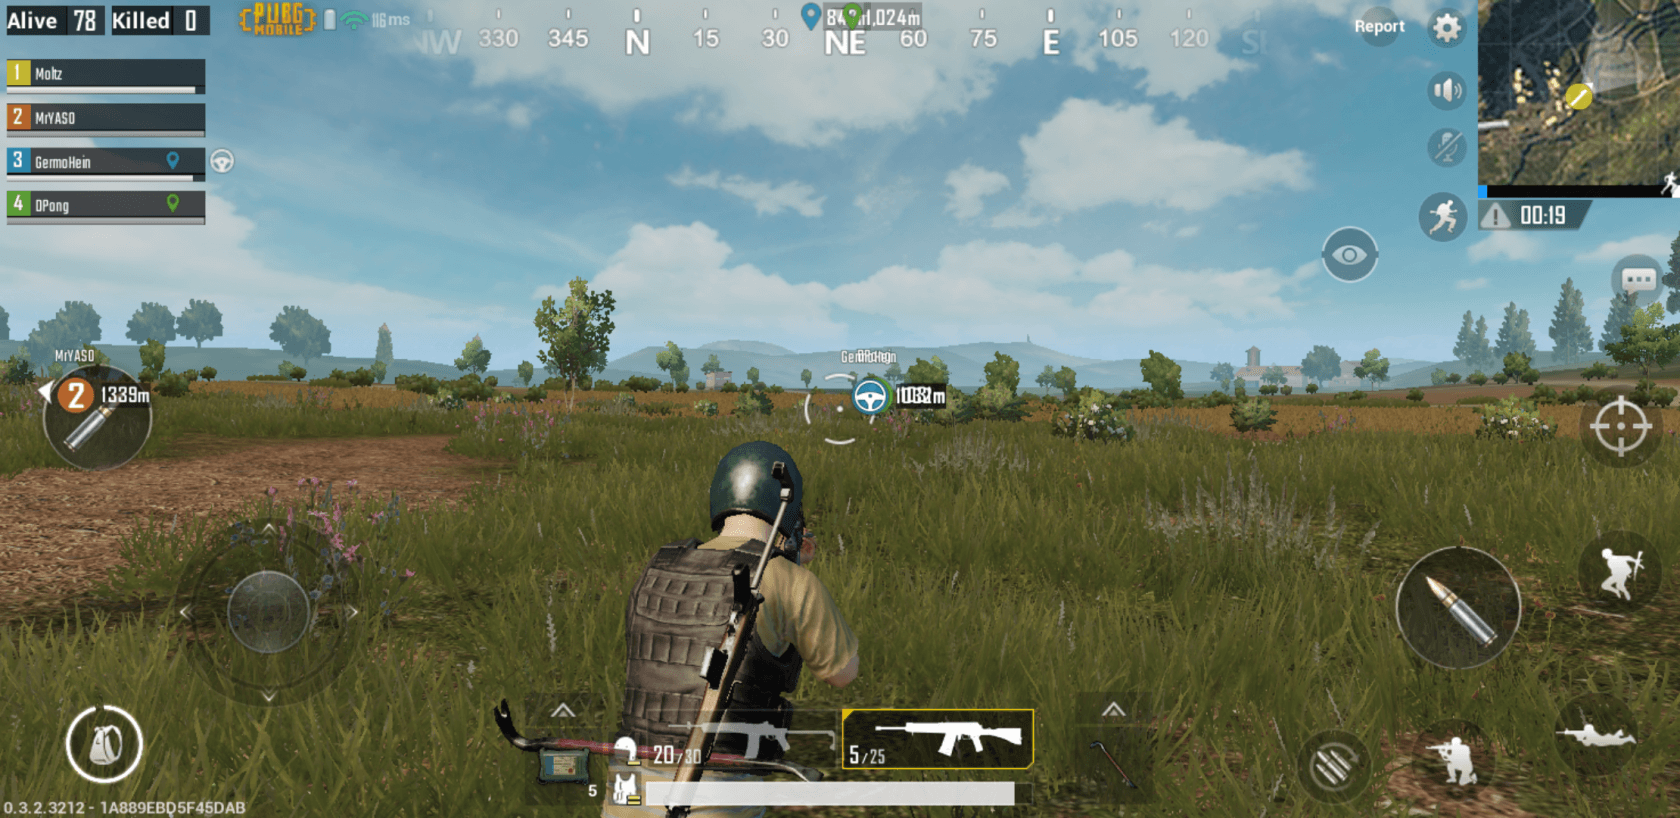 PUBG Mobile Lag issue